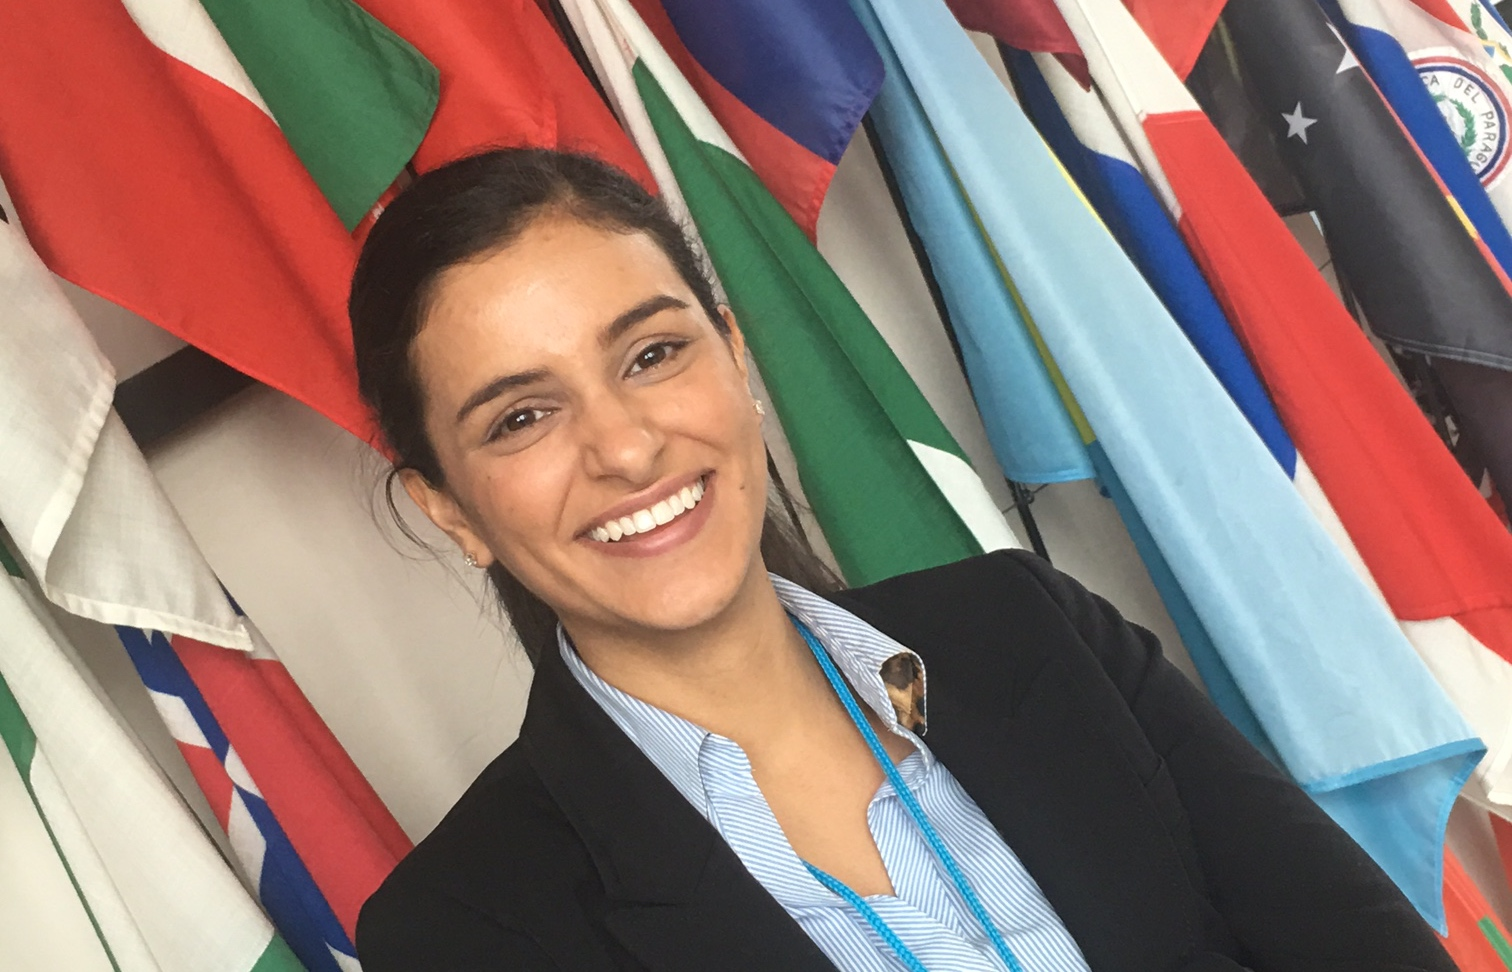 Engineering student lands IAEA internship in Vienna